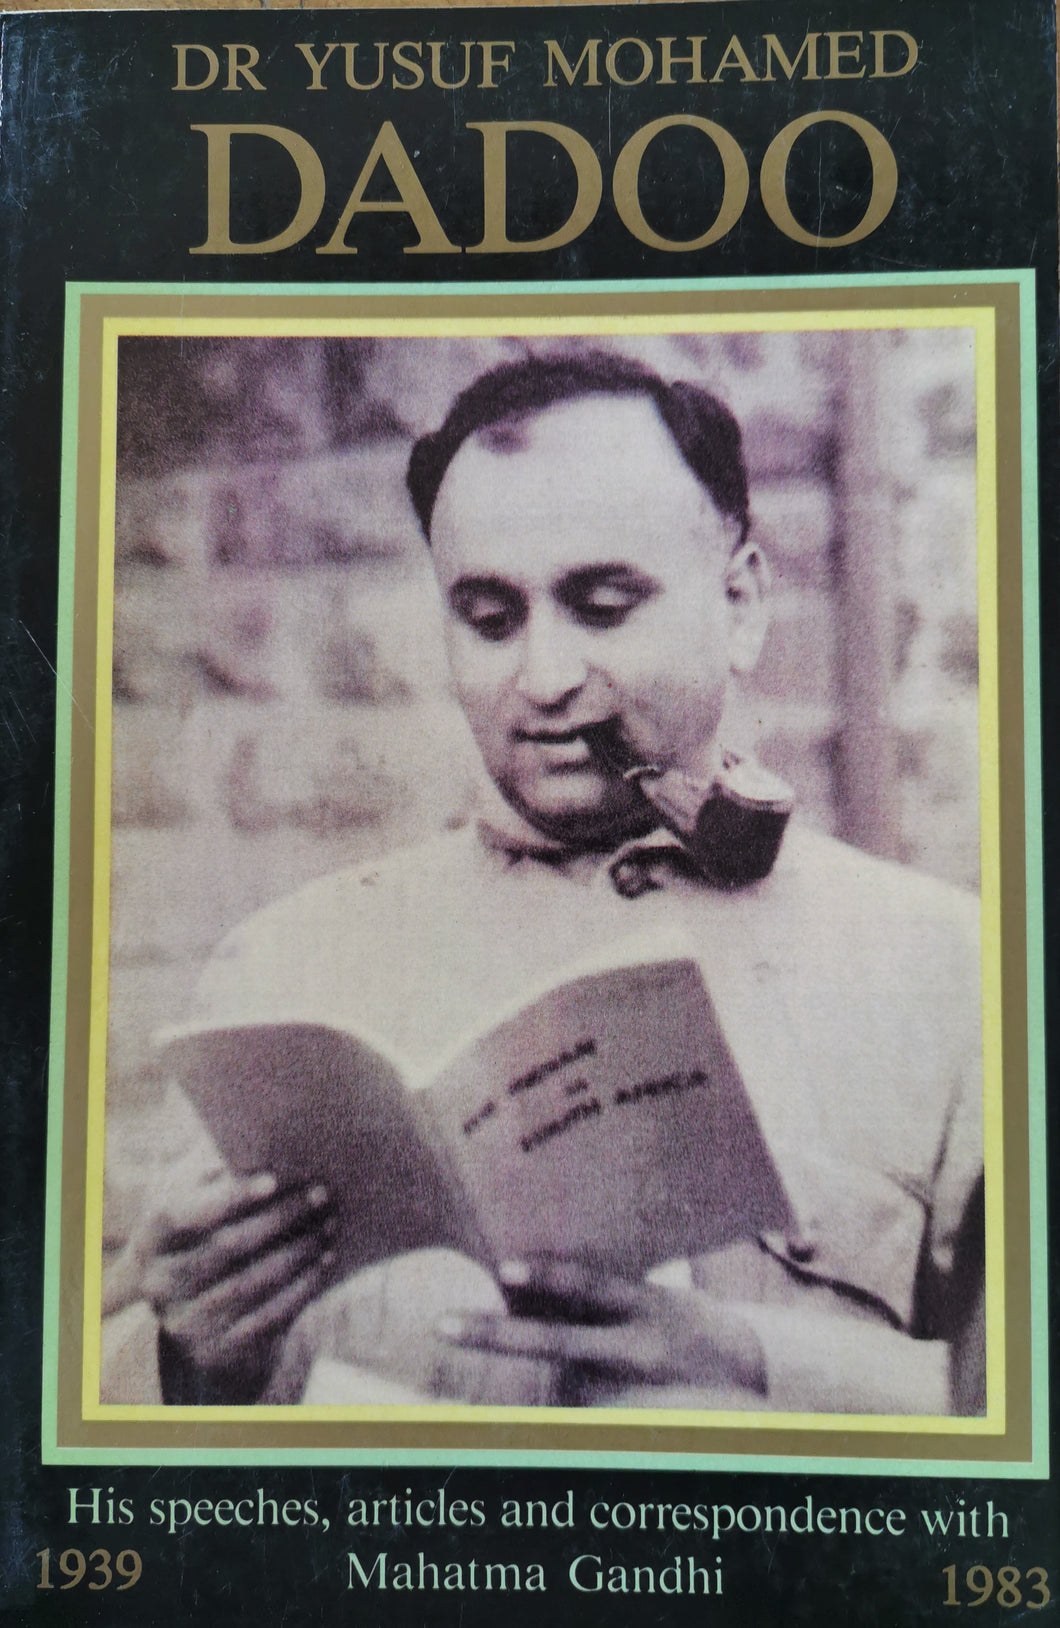 Dr. Yusuf Mohamed Dadoo - His Speeches, Articles and Correspondence with Mahatma Gandhi